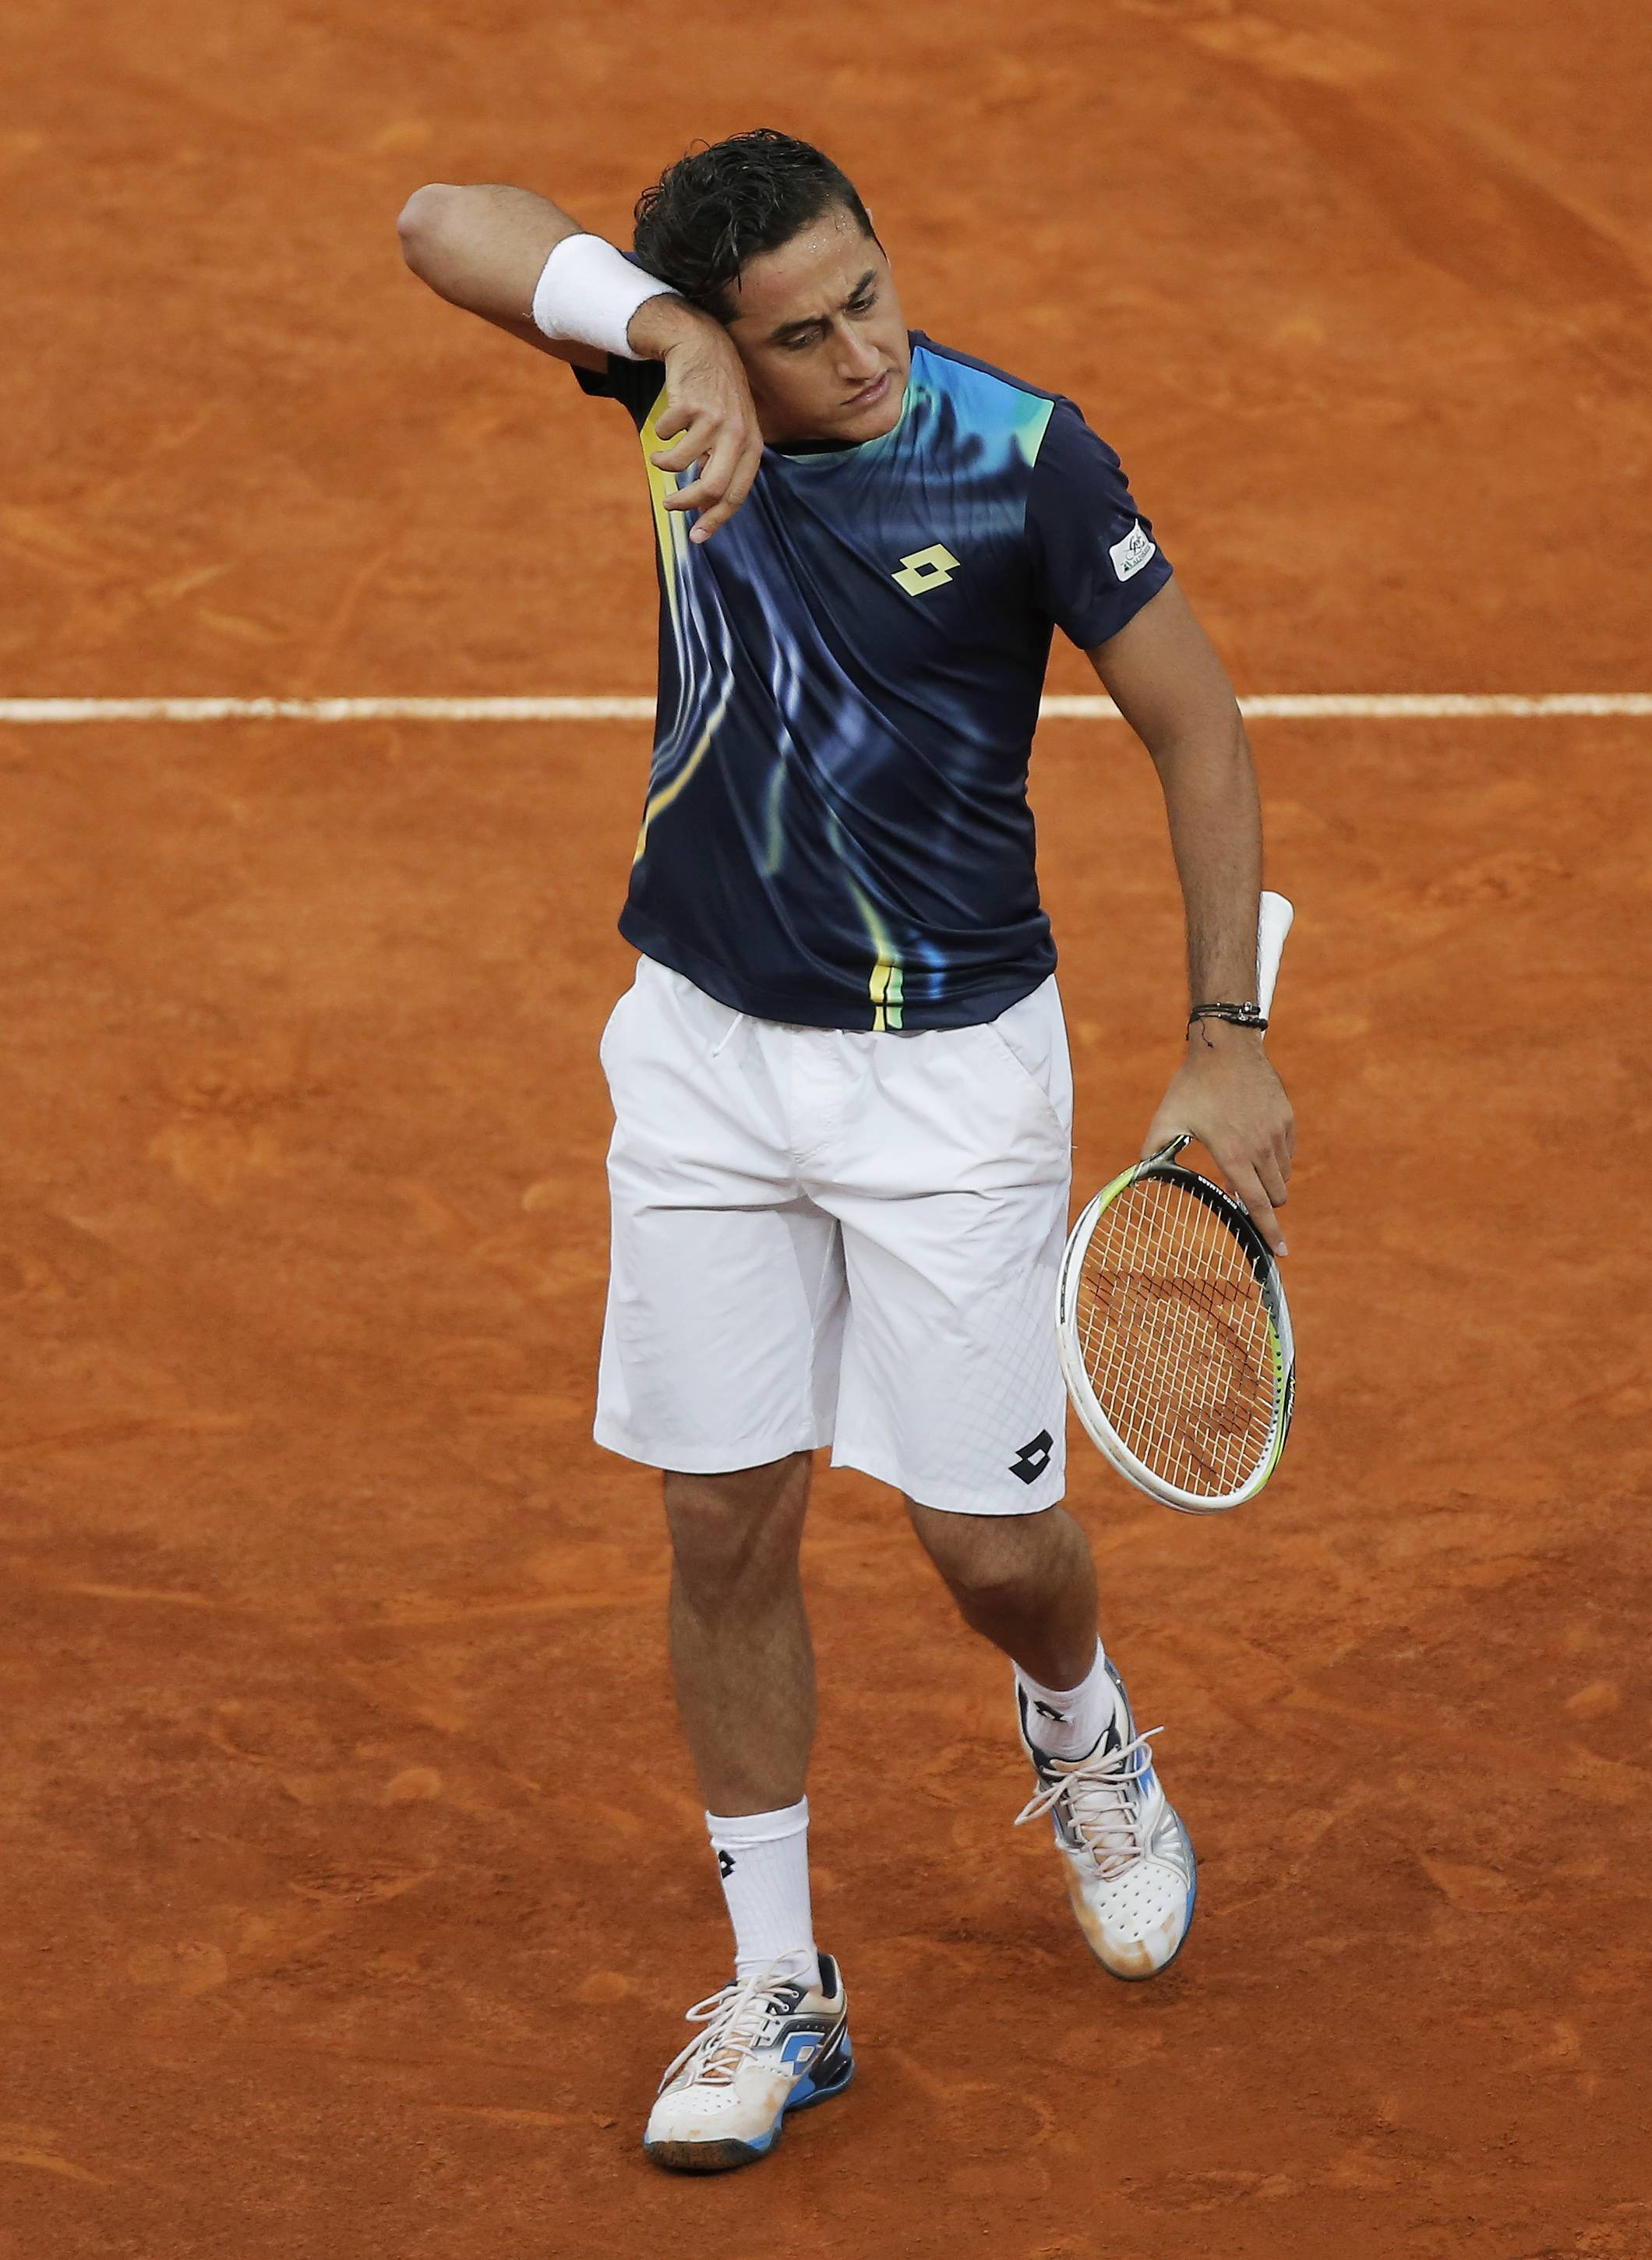 Nicolas Almagro from Spain reacts during a Madrid Open tennis tournament match against Britain's Andy Murray, in Madrid, Spain, Wednesday, May 7, 2014.